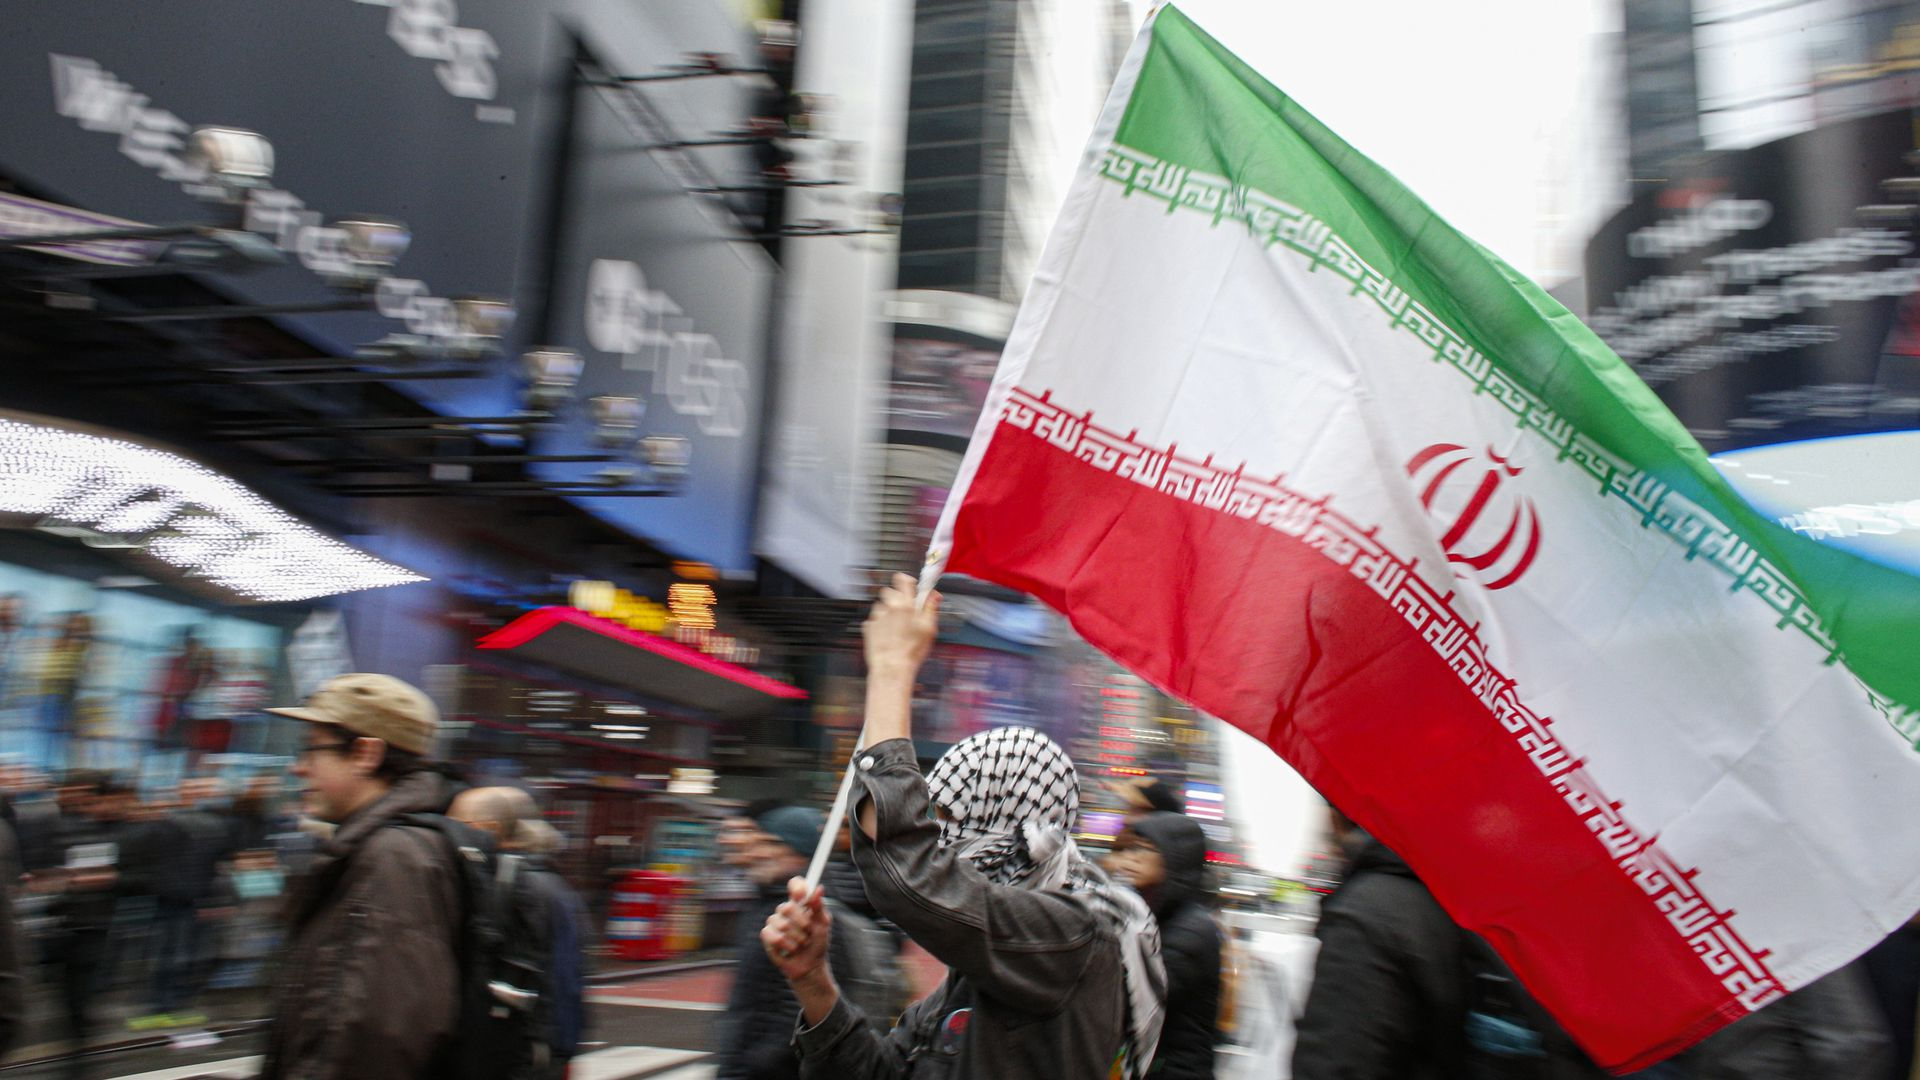 In this image, a person holds the Iranian flag